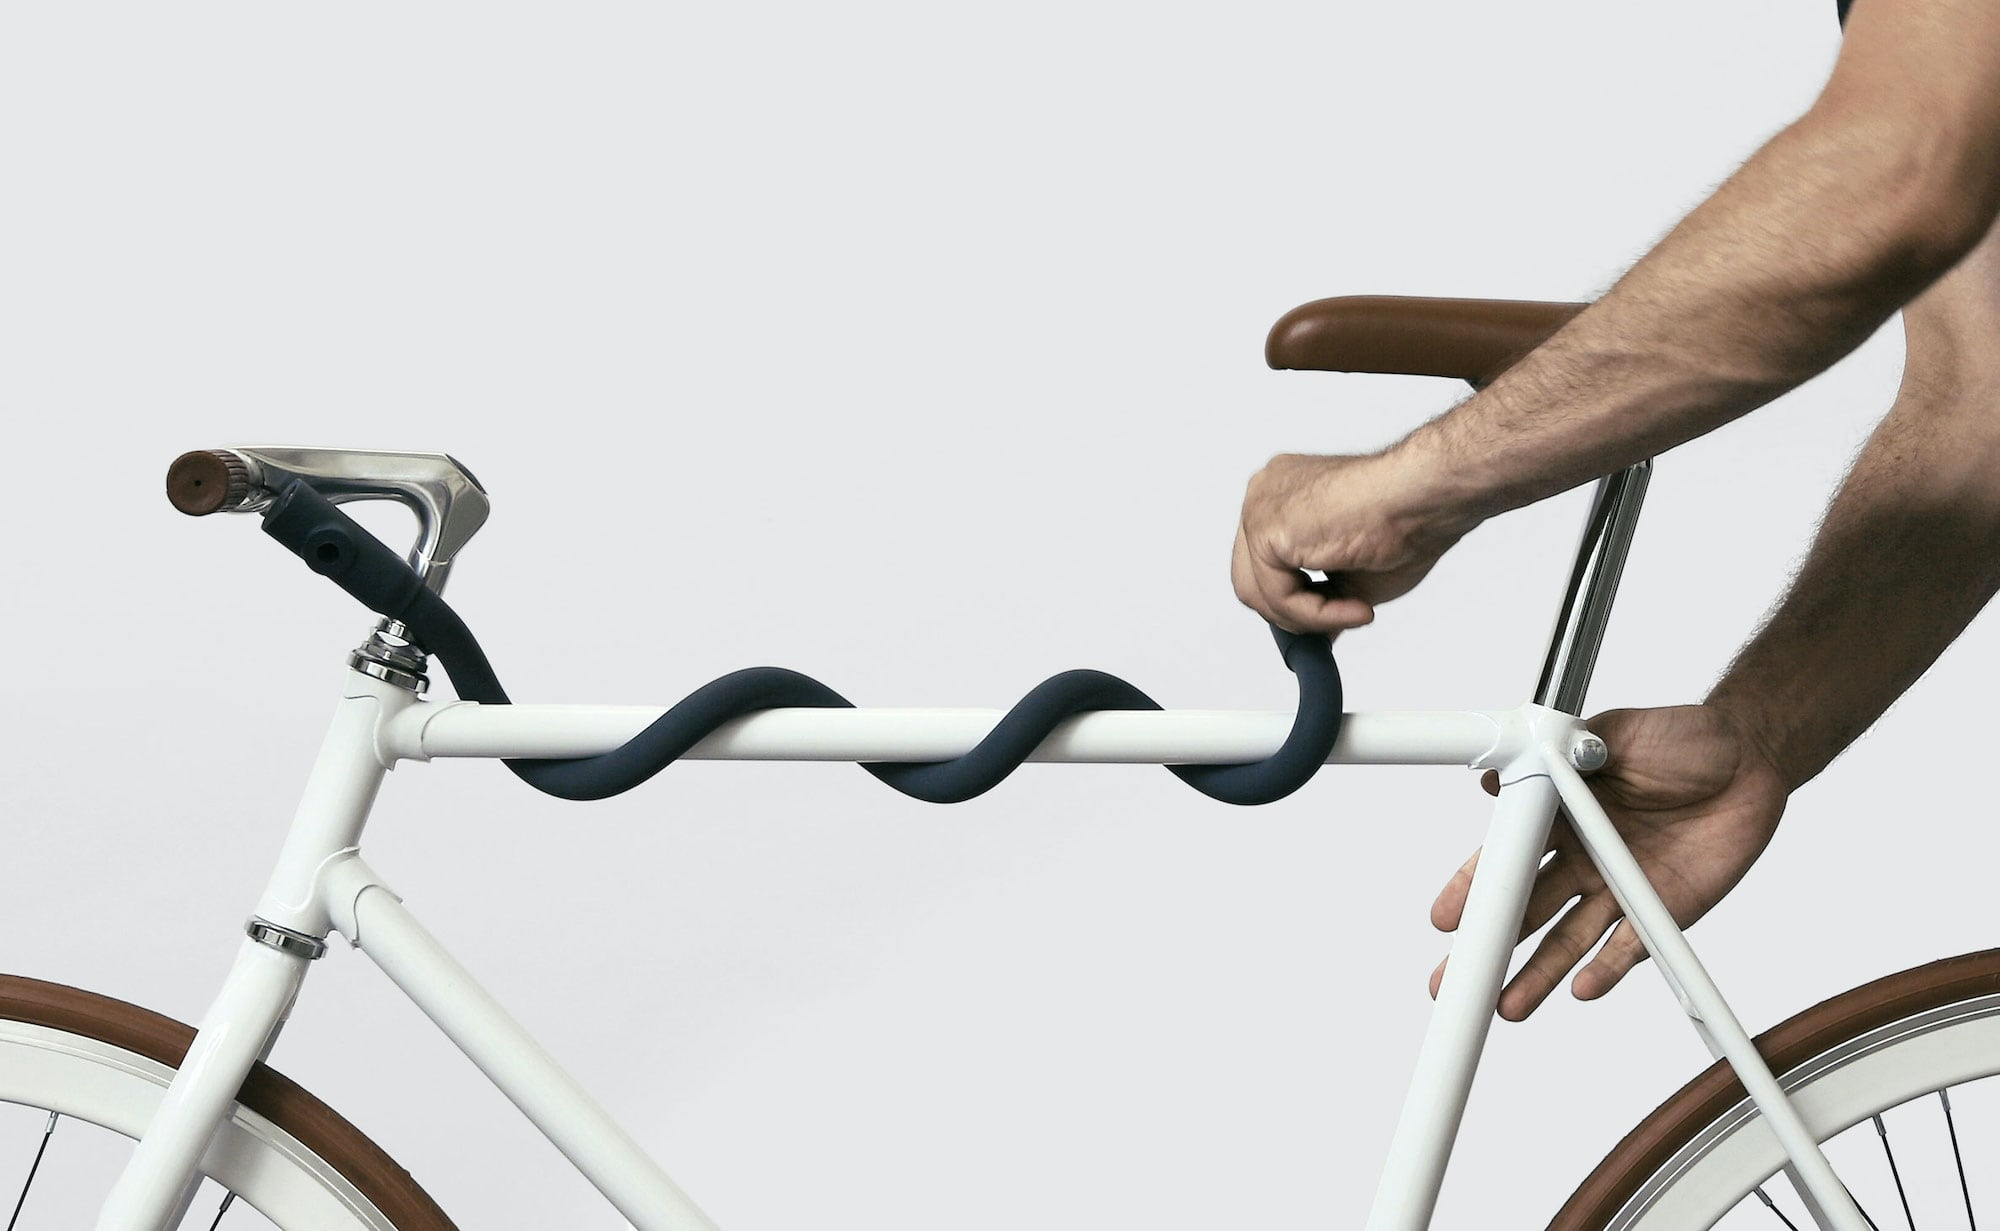 Palomar Lochness Multi-Shape Bike Lock easily wraps around your bicycle during travel